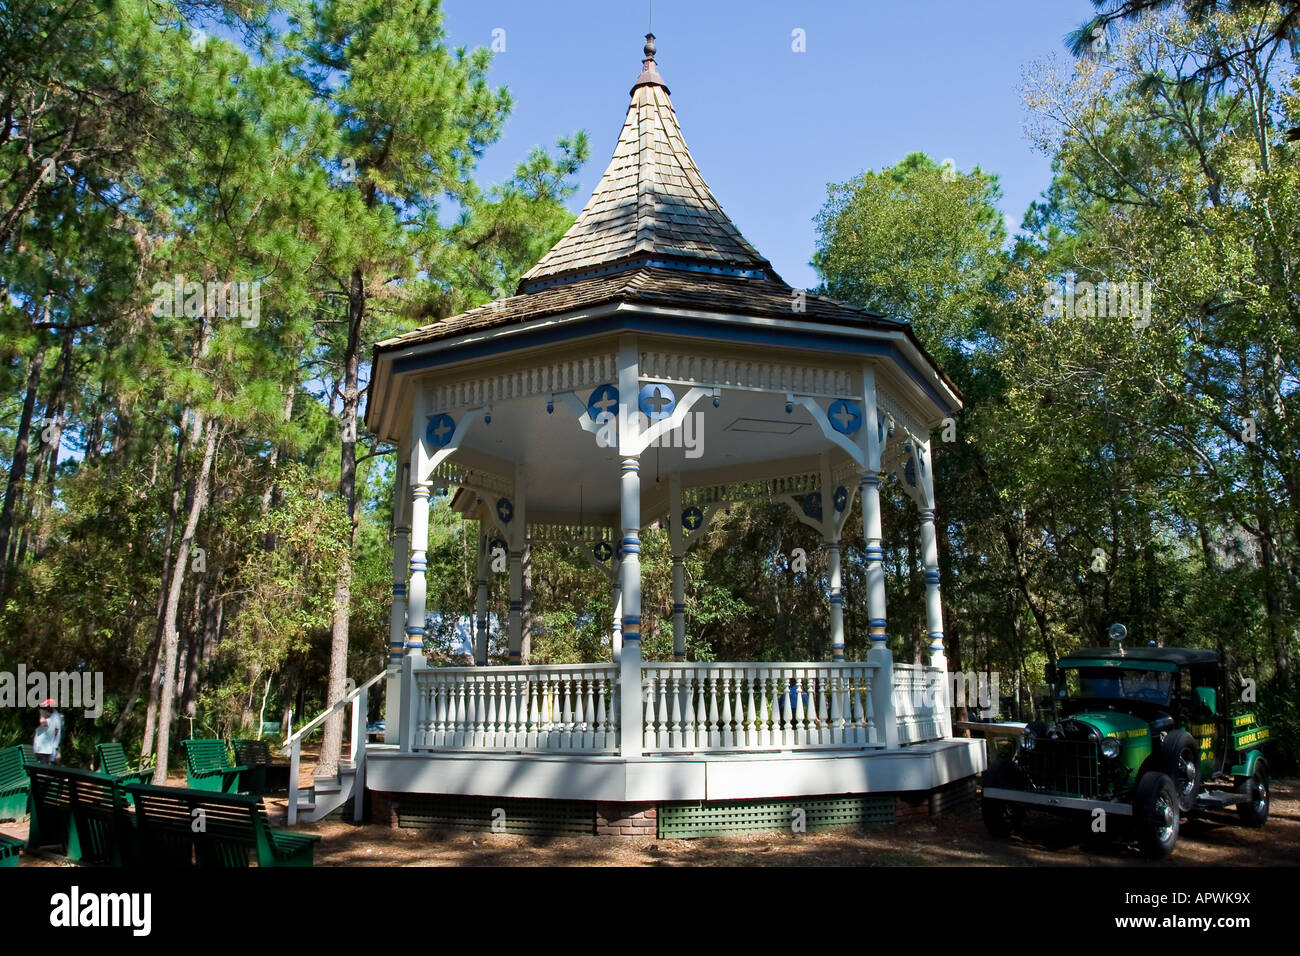 early 20th century gazebo and antique Ford truck - Stock Image